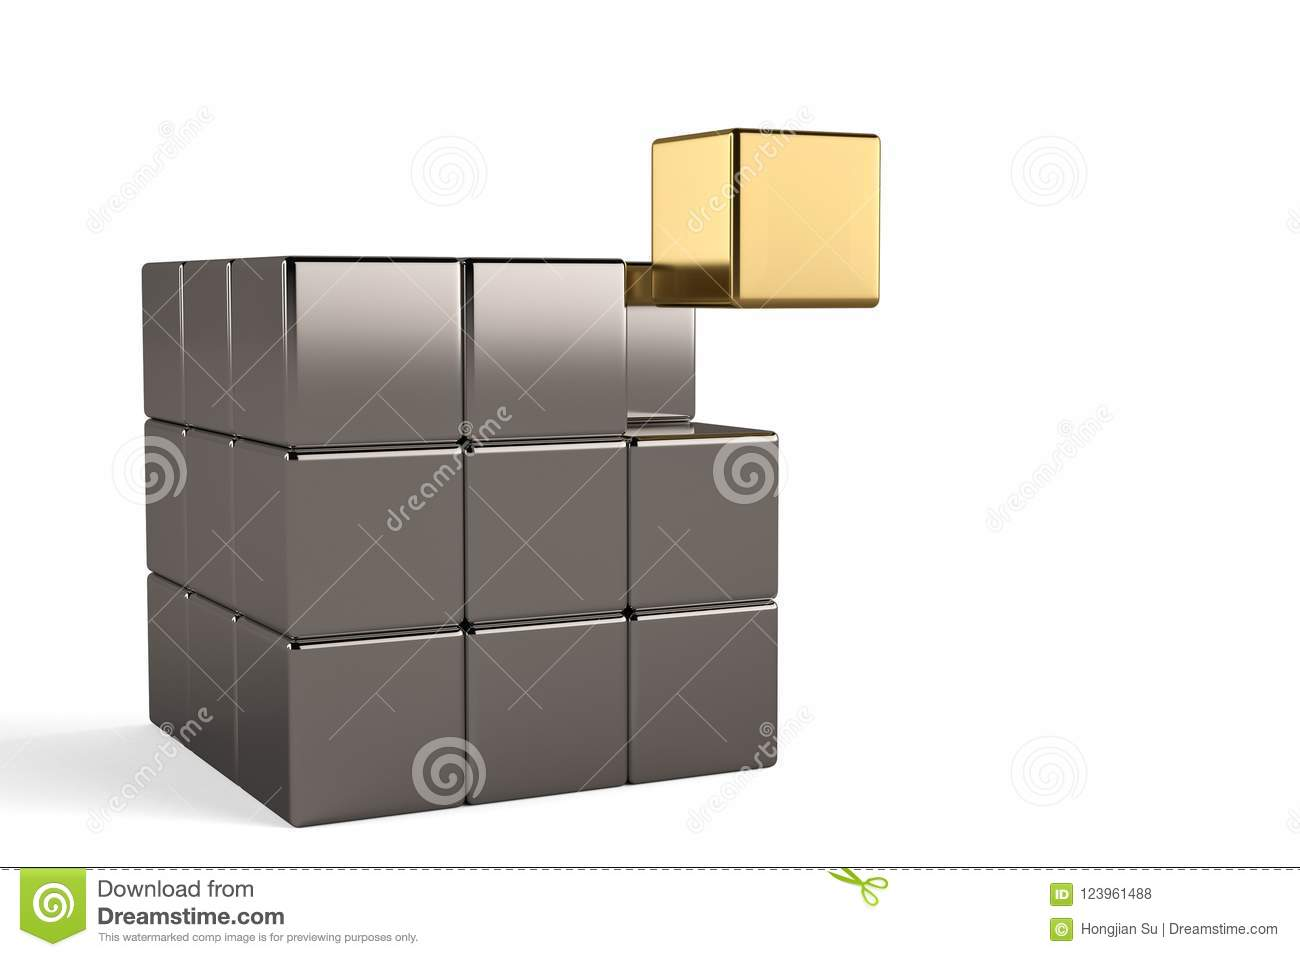 Golden cube and steel cubes on white background.3D illustration.